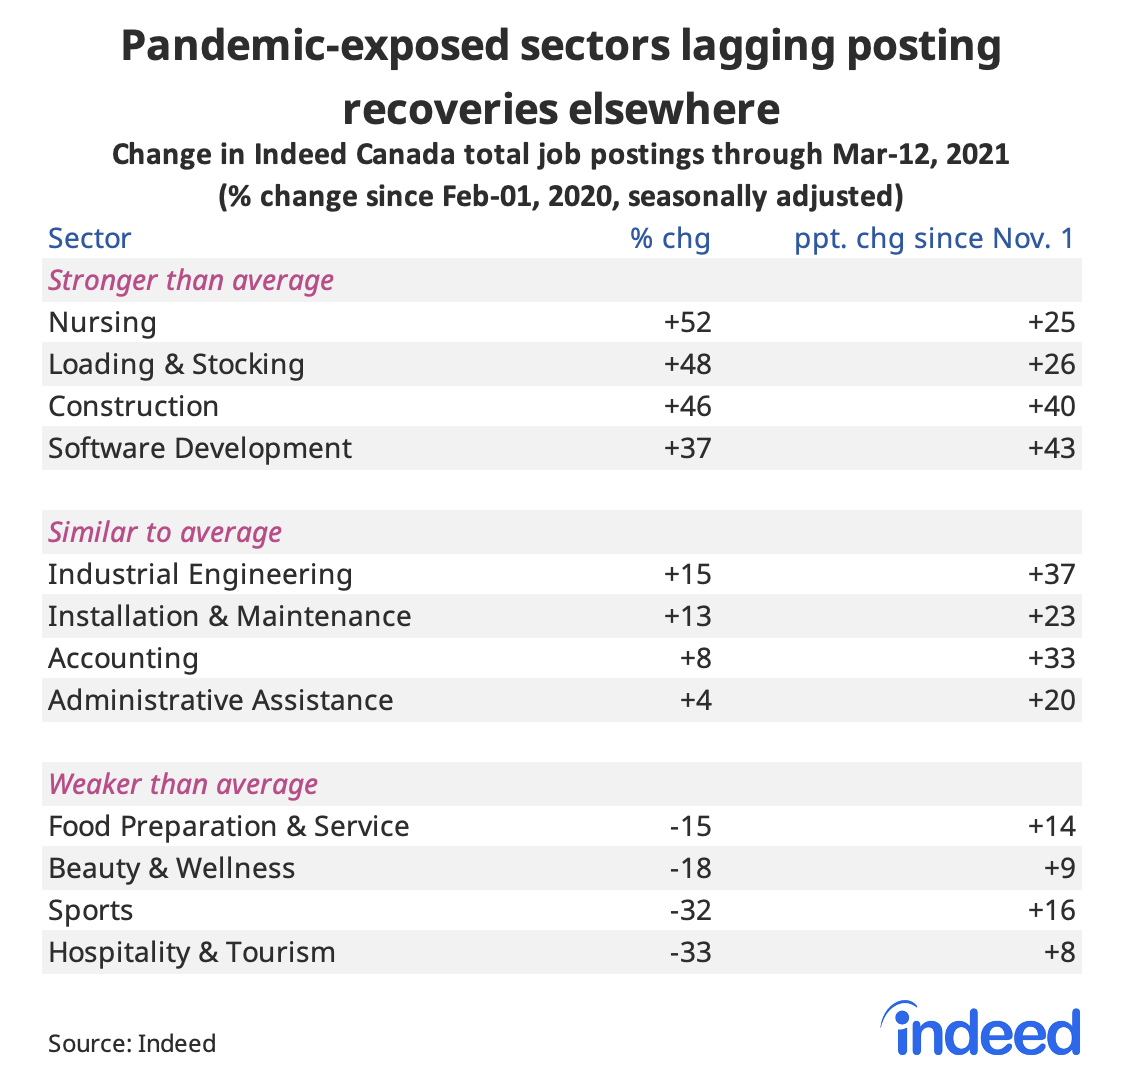 Table showing pandemic exposed sectors lagging postings recoveries elsewhere